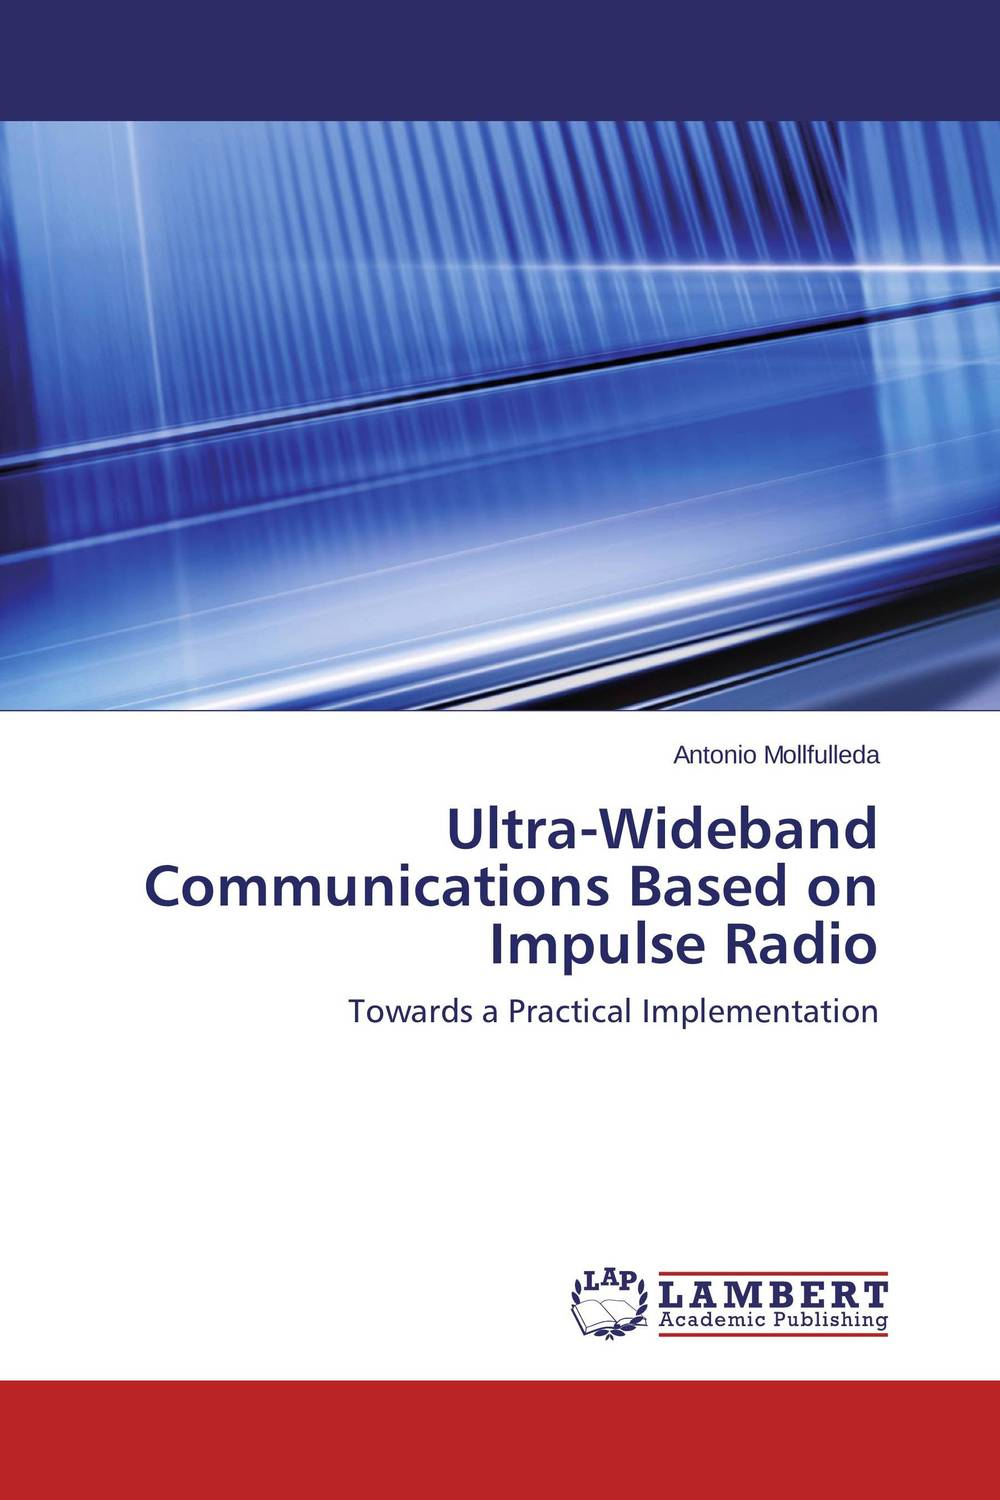 Ultra-Wideband Communications Based on Impulse Radio ultra wideband communications systems structure and design